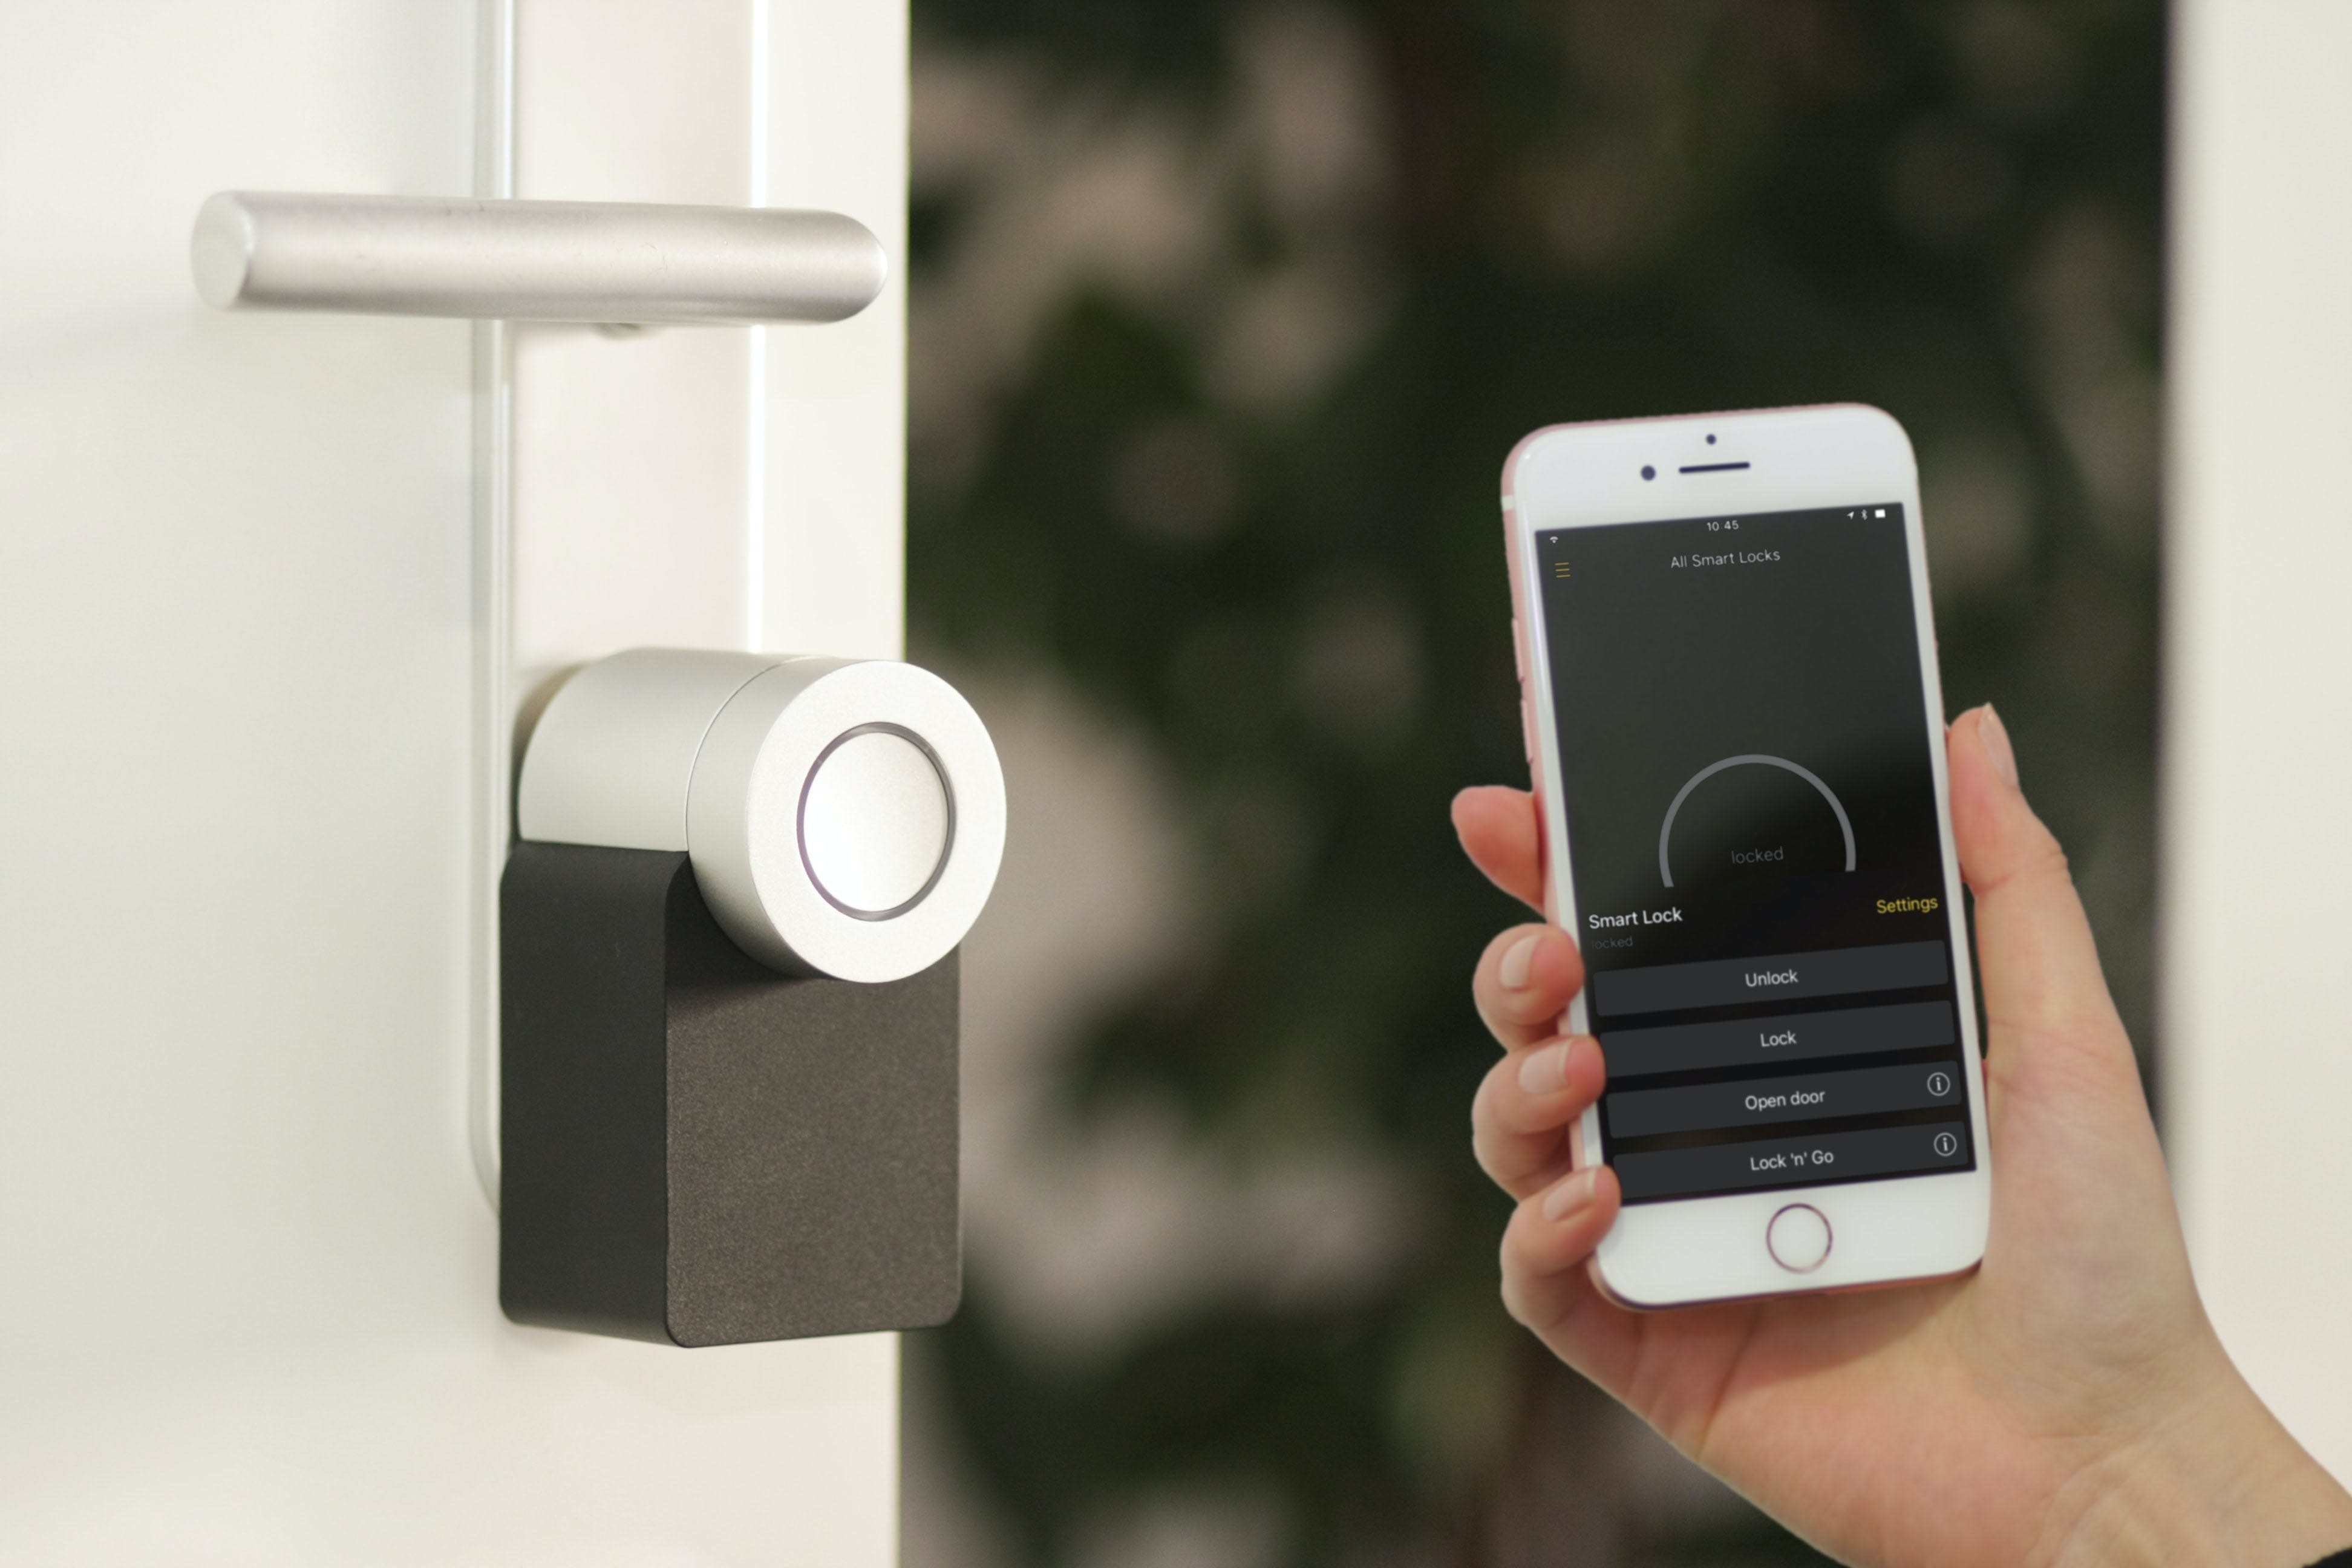 Smart Lock Not Working? Here's What to Do